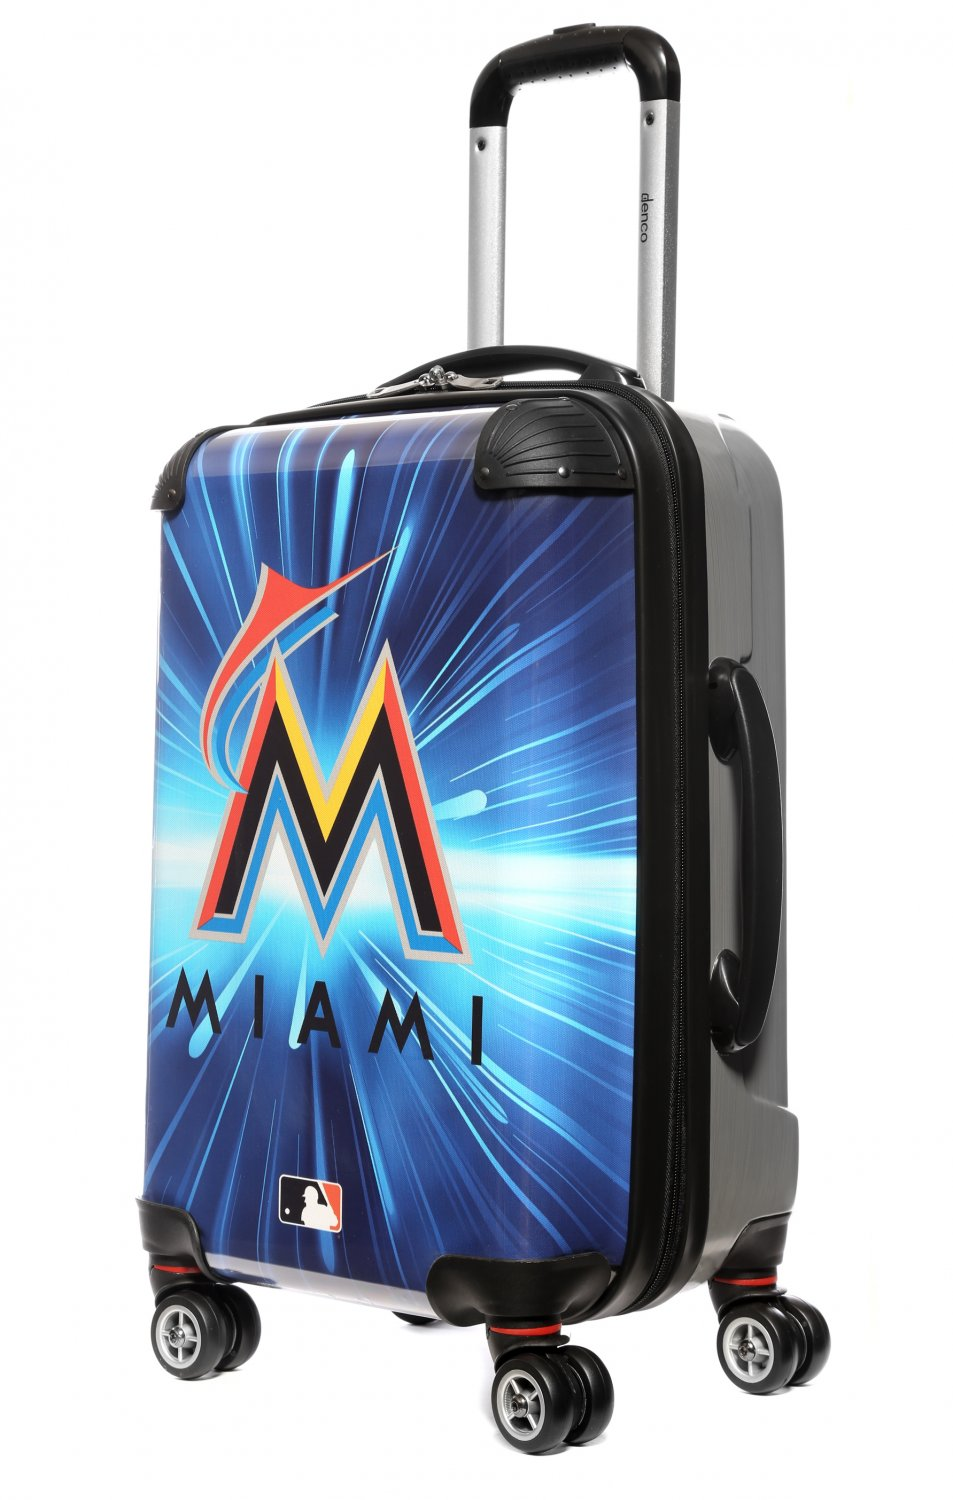 "Miami Marlins, 21"" Clear Poly Carry-On Luggage by Kaybull #MIA3"